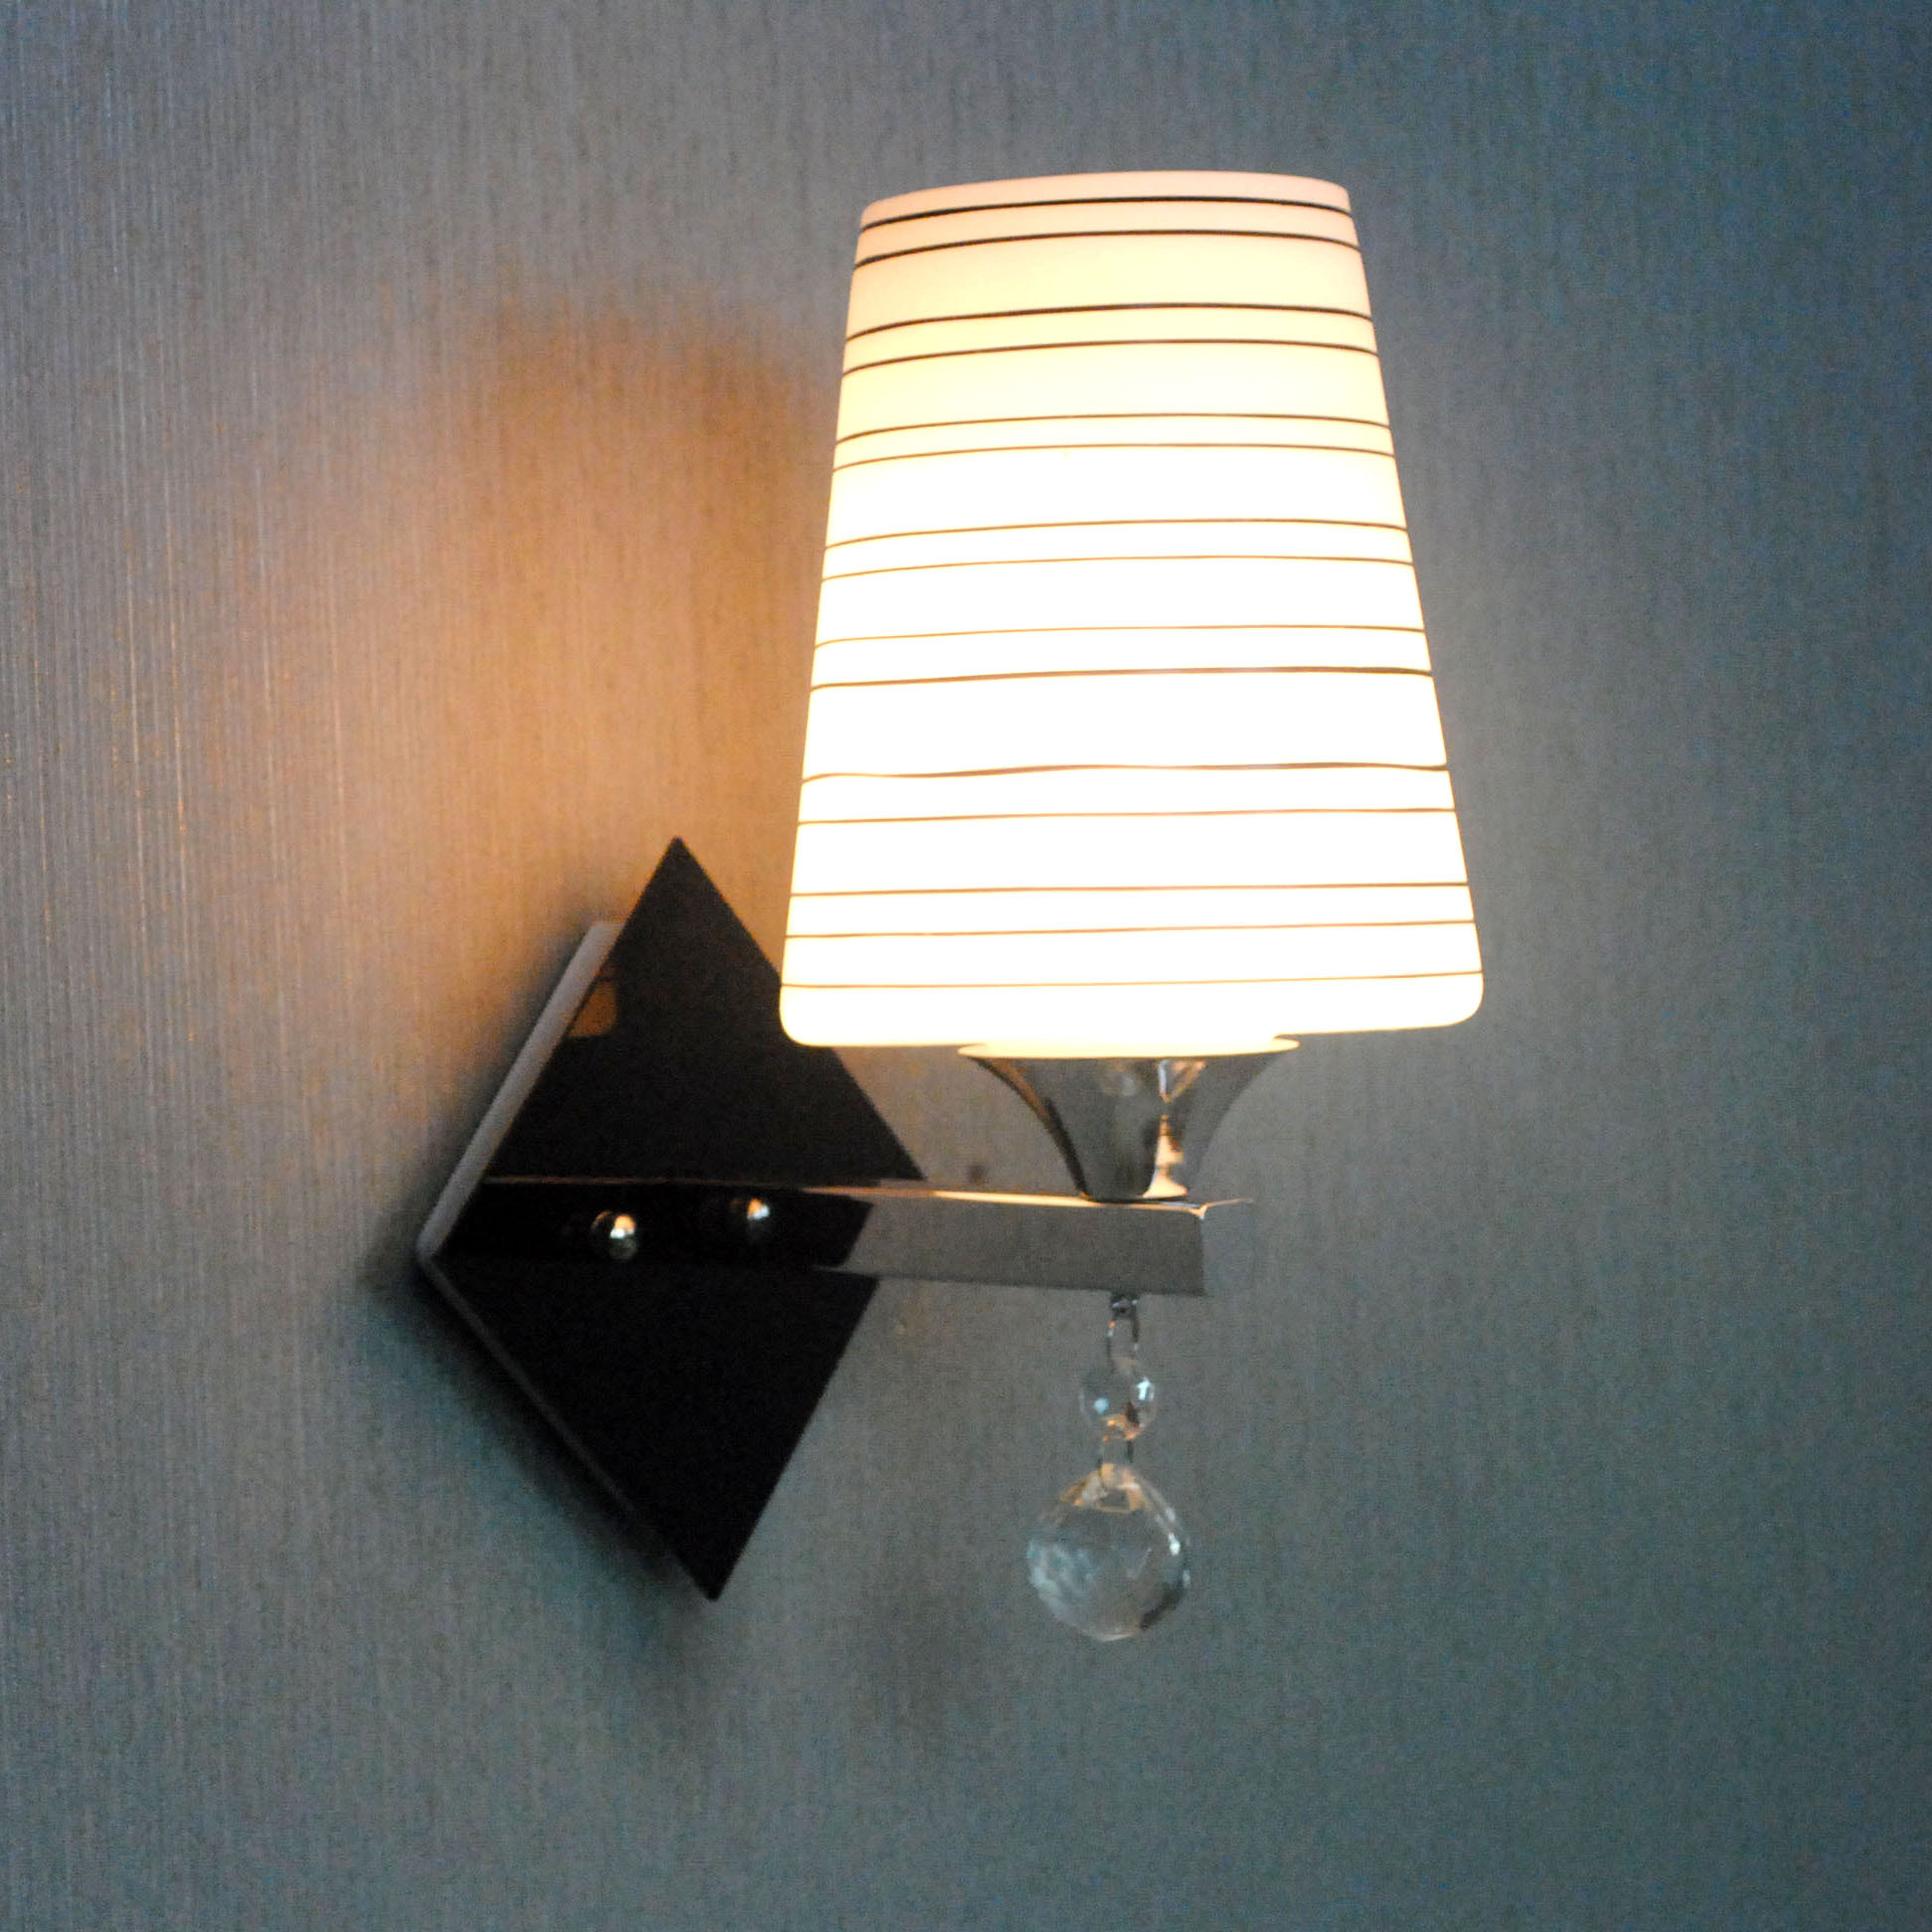 Modern Lamps For Bedroom Lamps For Bedroom Table Lamp Bedside Lamps Fairy Lights